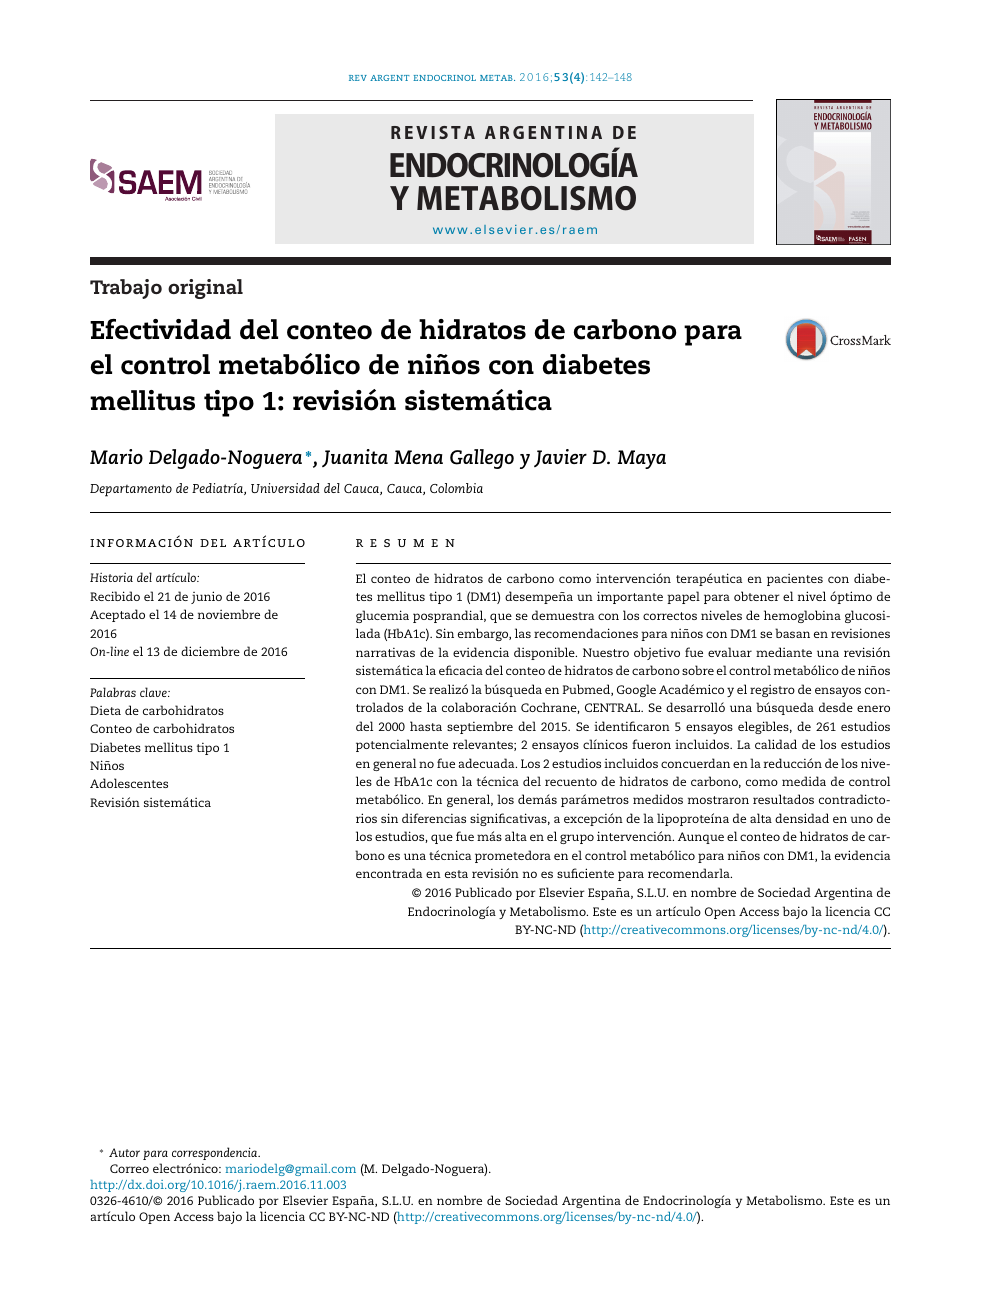 glucemia valores normales minsal